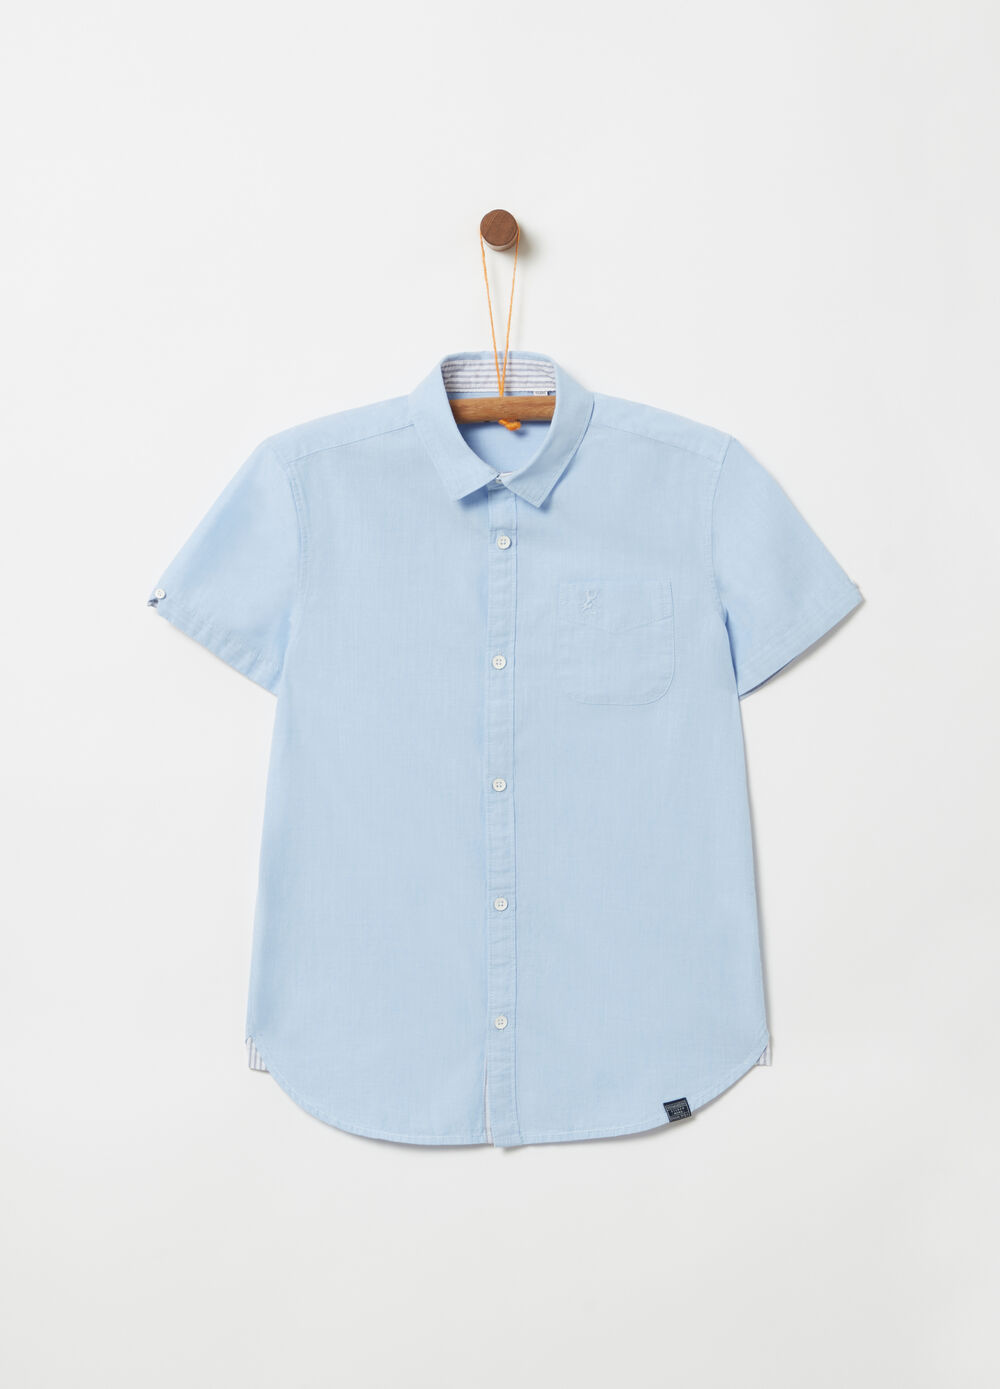 Short-sleeved shirt with embroidery and pocket